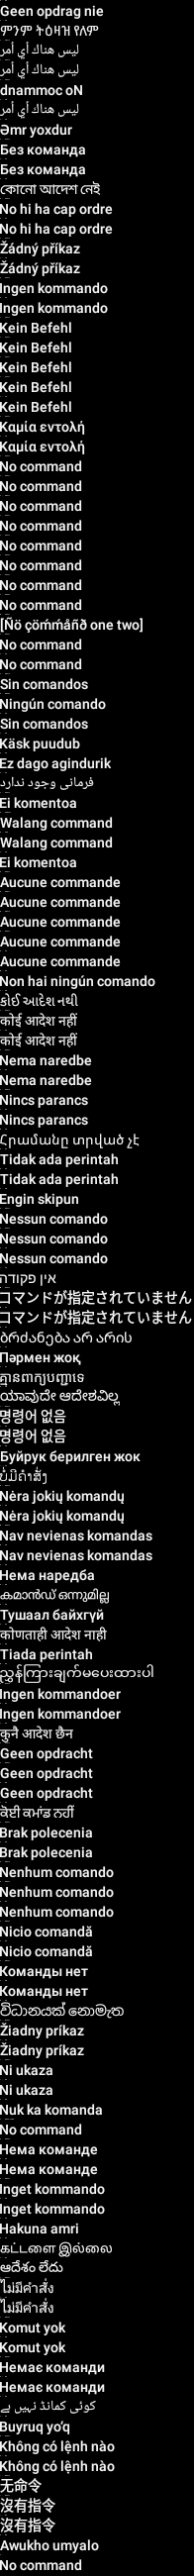 res-mdpi/images/no_command_text.png